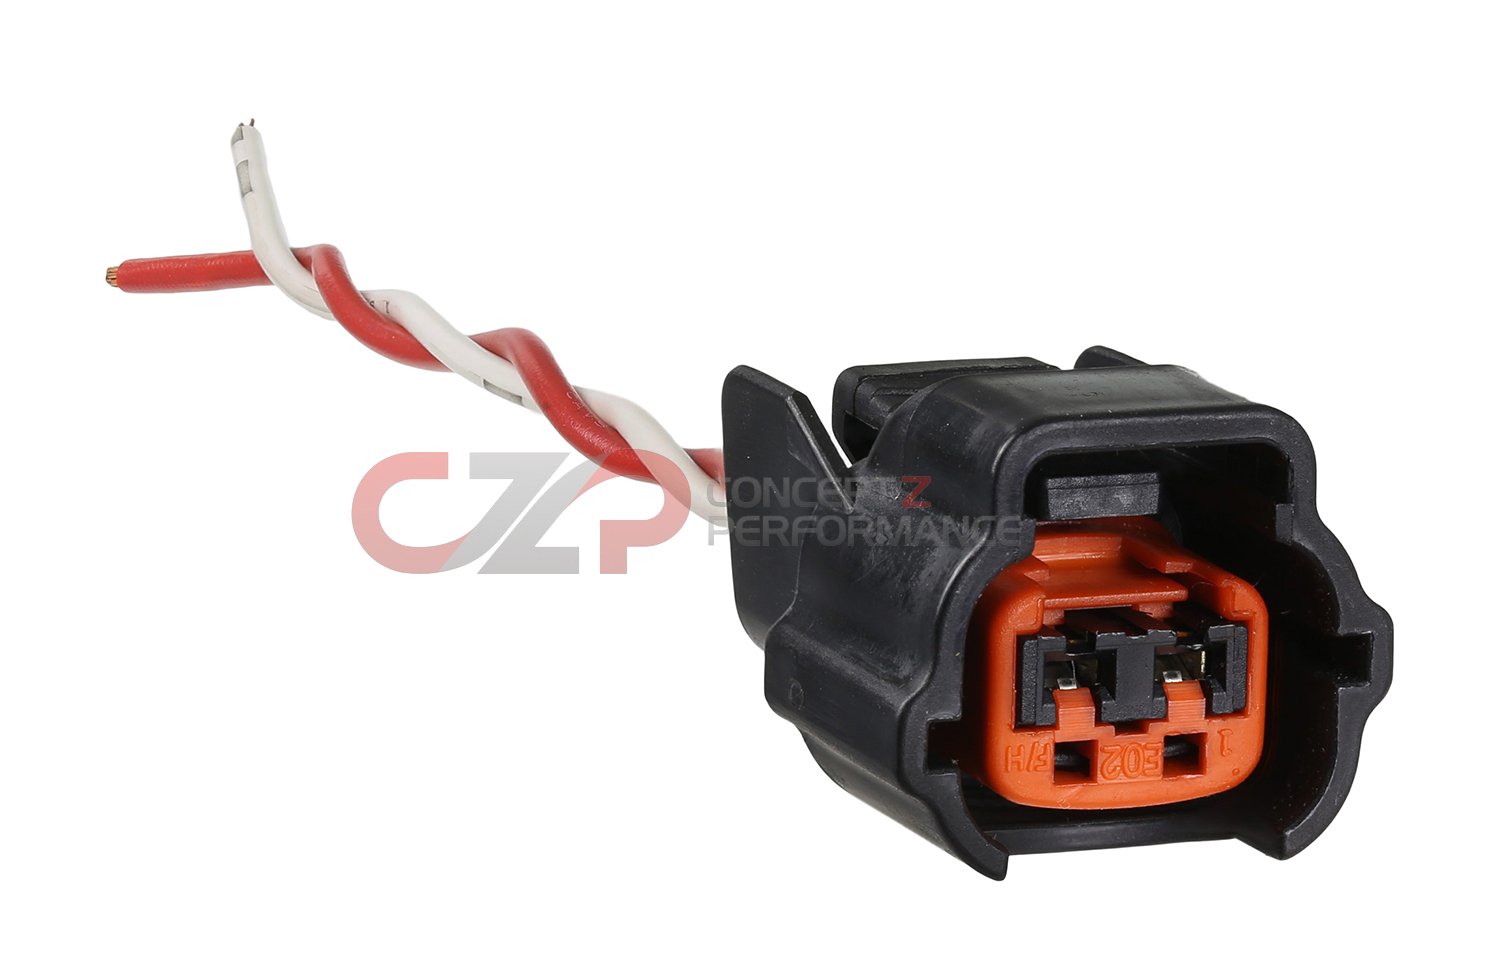 Z32 Engine Electrical Connectors Pigtails Concept Z Performance Nissan 240sx S14 Sr20det Transmission Harness Wiring Specialties Czp Fuel Injector Connector Newer Later Style S13 S15 300zx